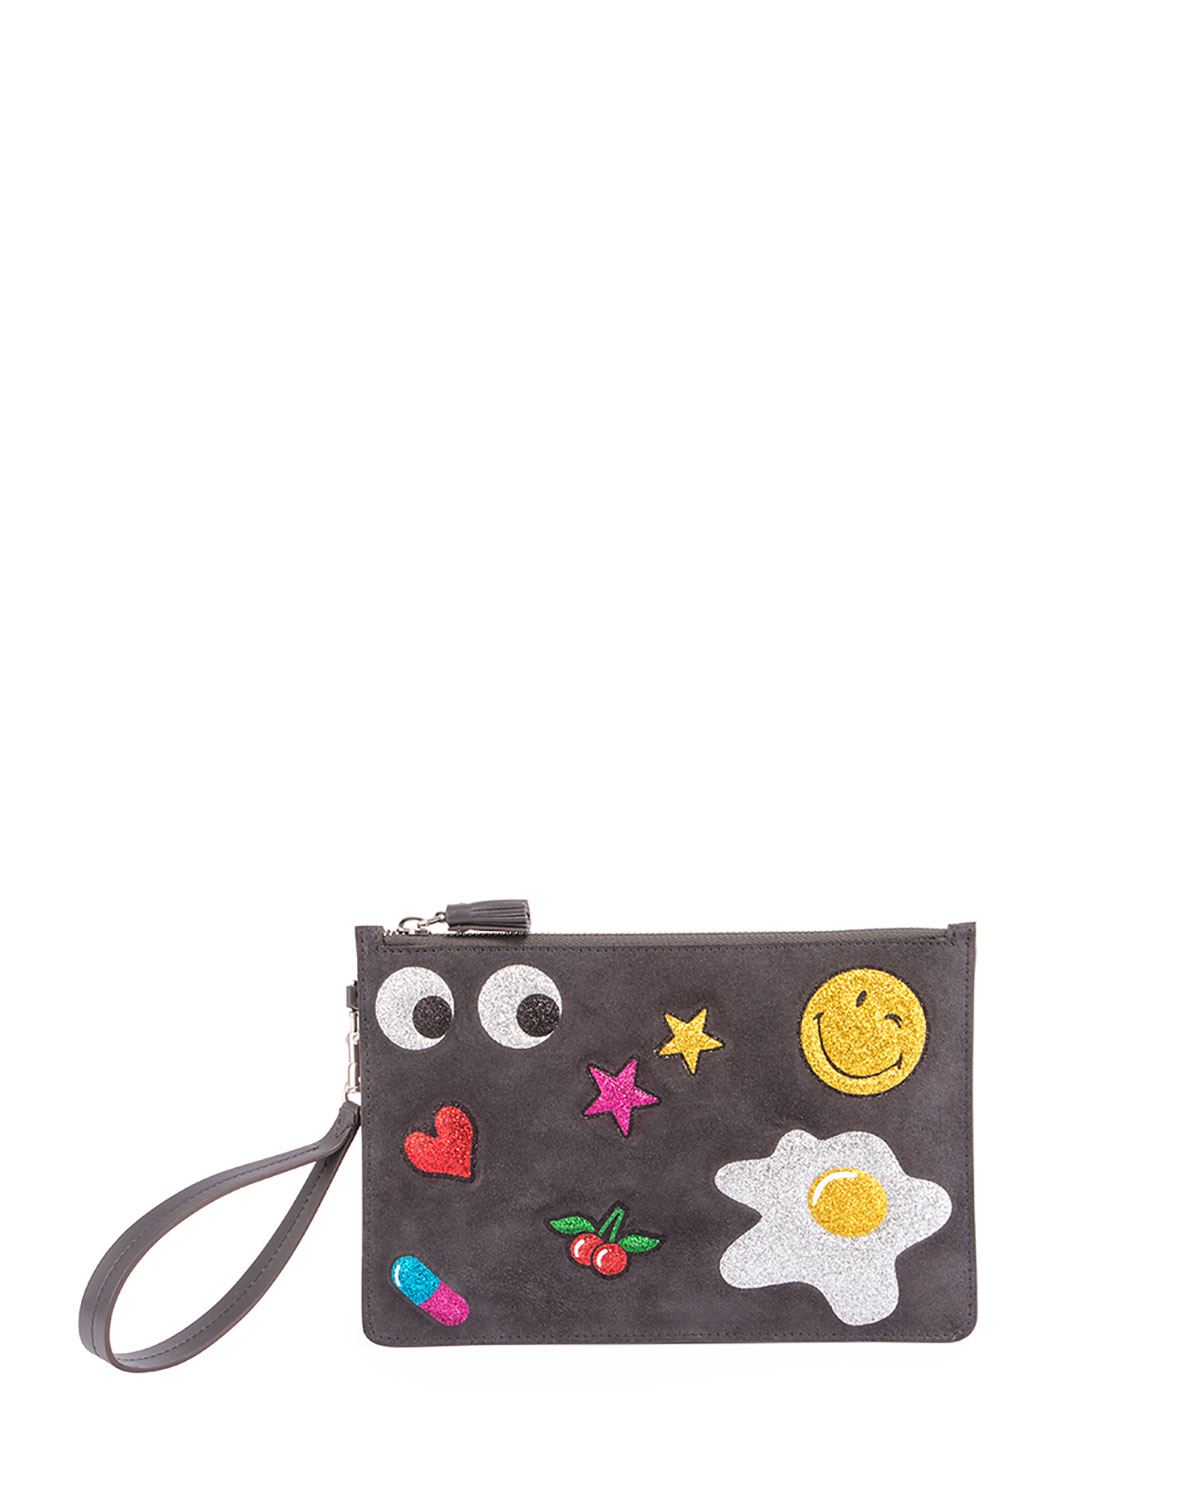 3af5f74ed1 Anya Hindmarch Suede Glitter Sticker Zip Pouch Bag